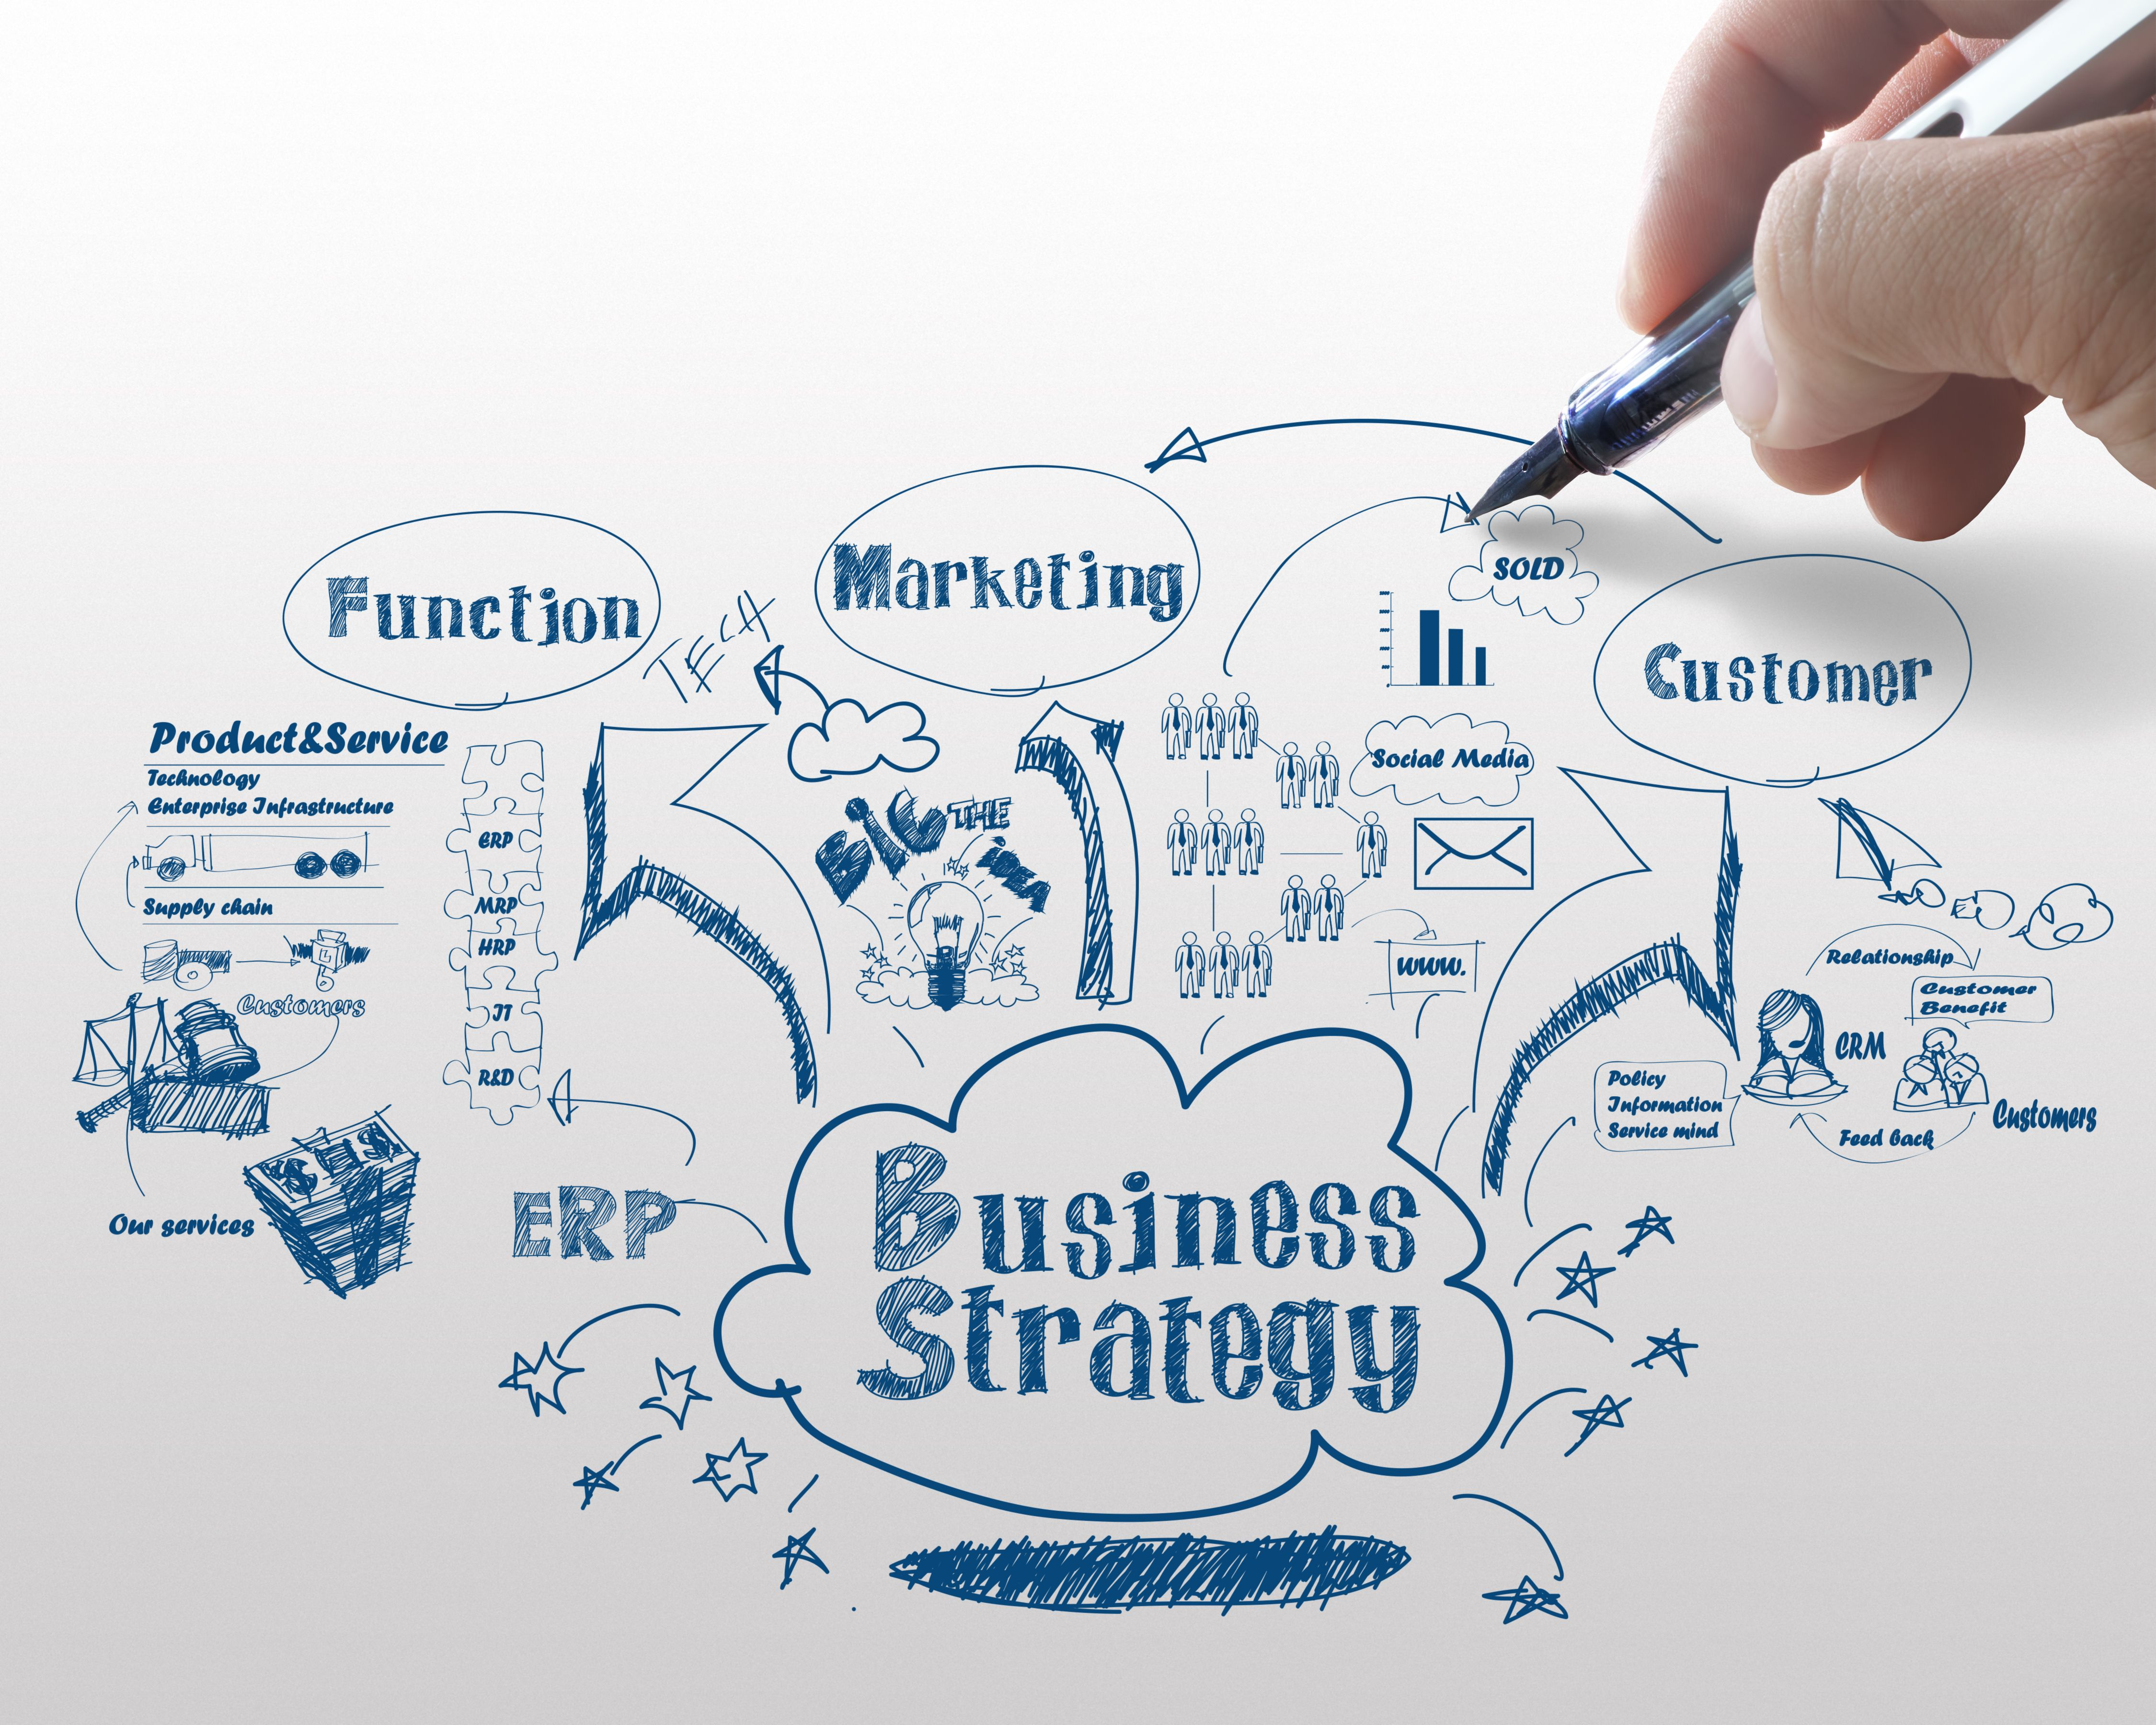 Bmgi Consulting Firm With A Strict Focus On Strategic Planning